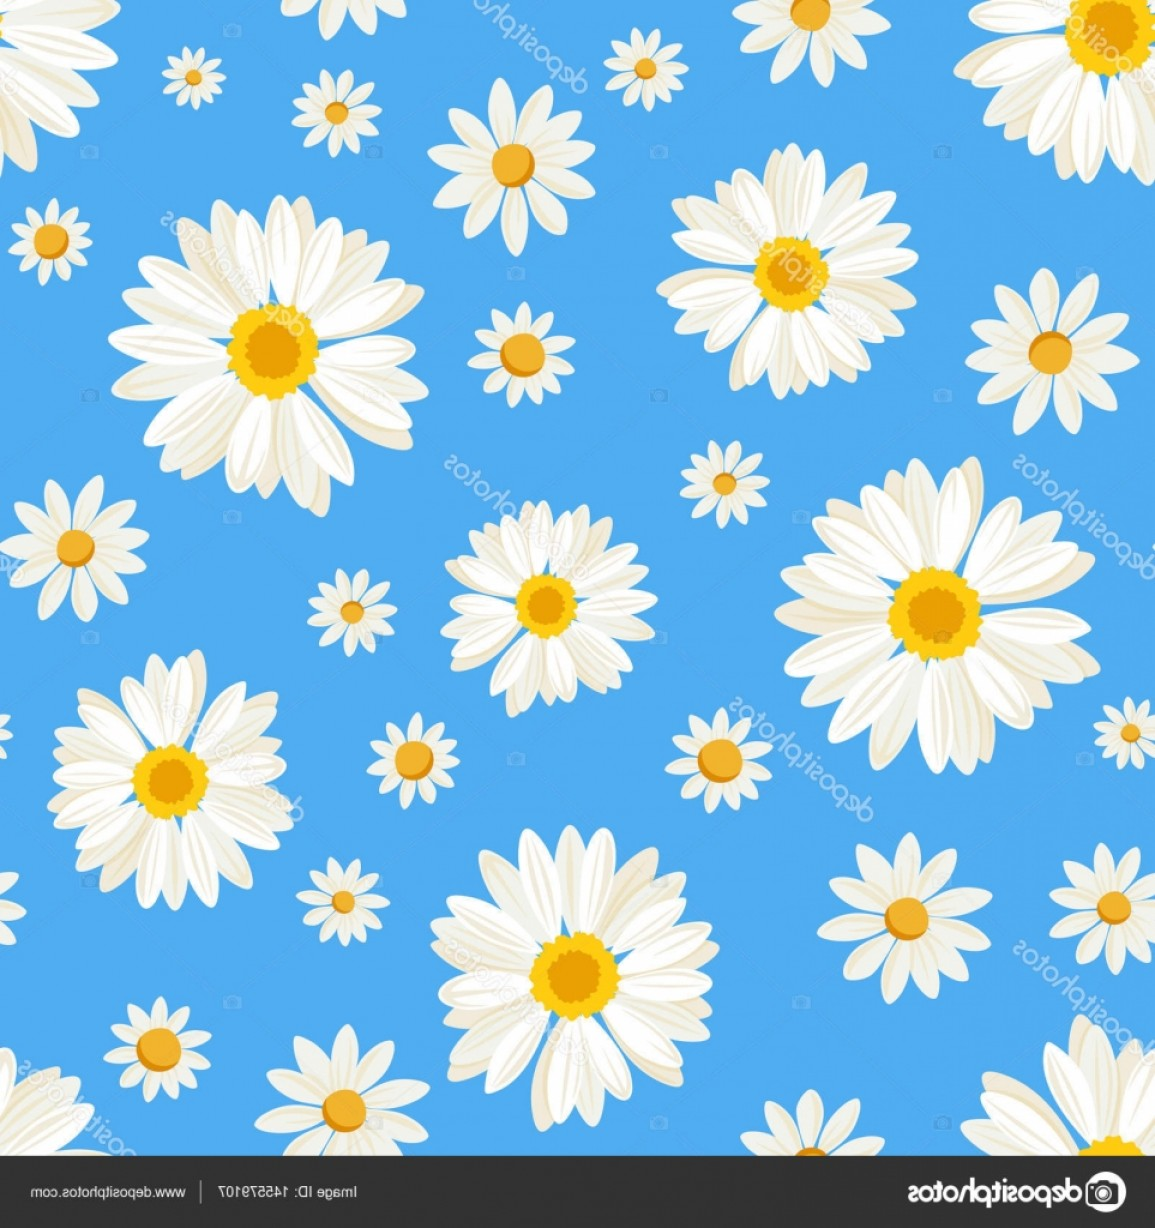 Blue Daisy Flower Vector: Stock Illustration Seamless Pattern With Daisy Flowers